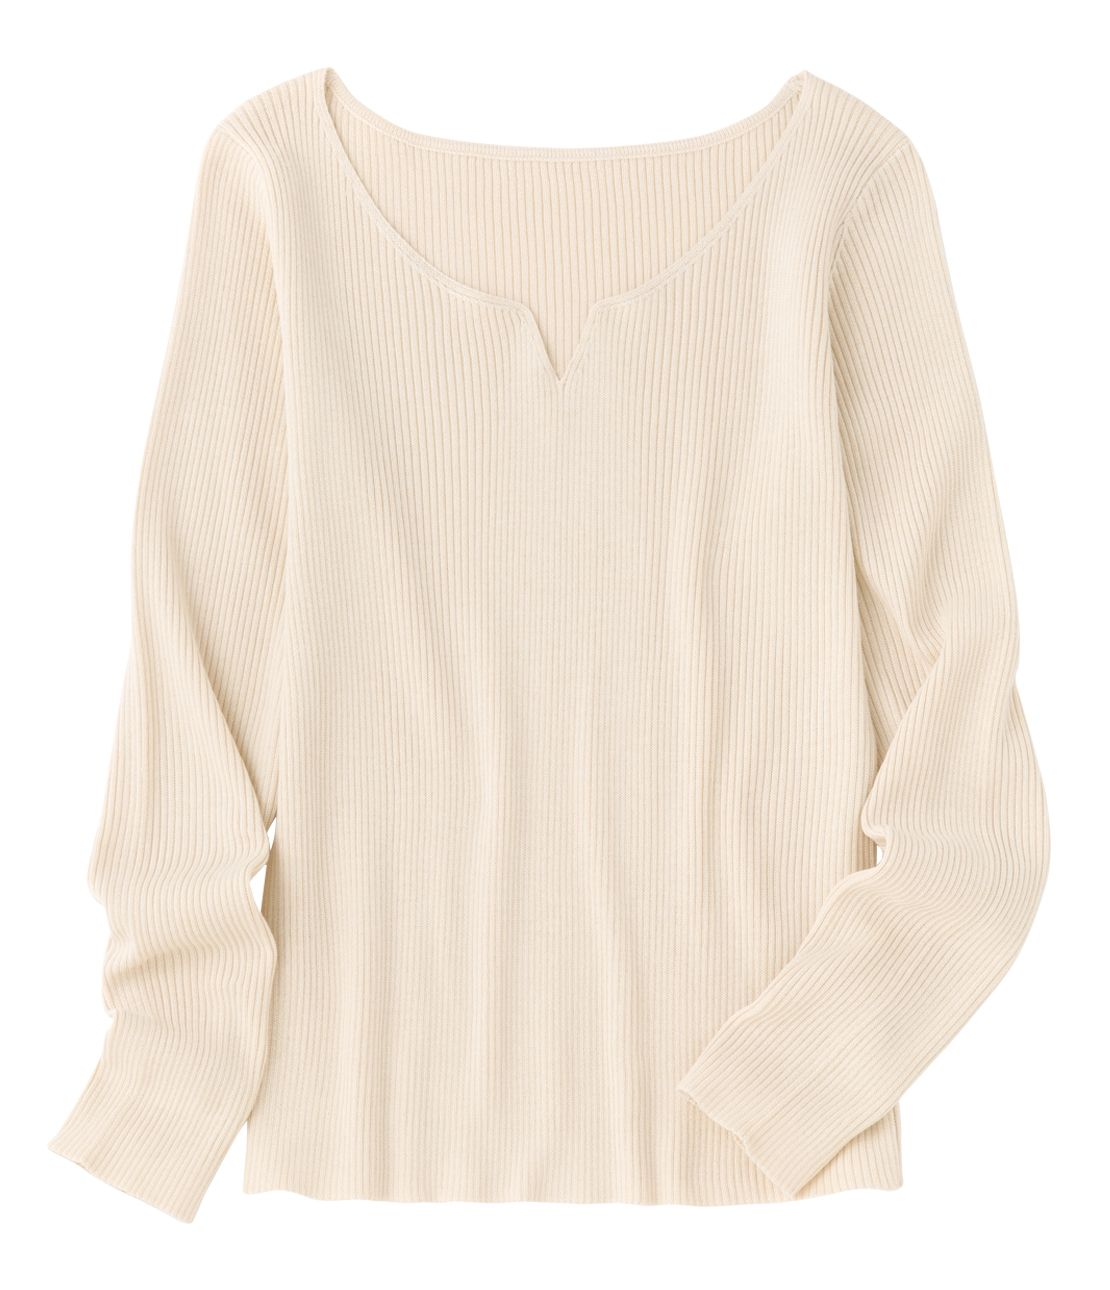 Deco Rutan Heart neck knit